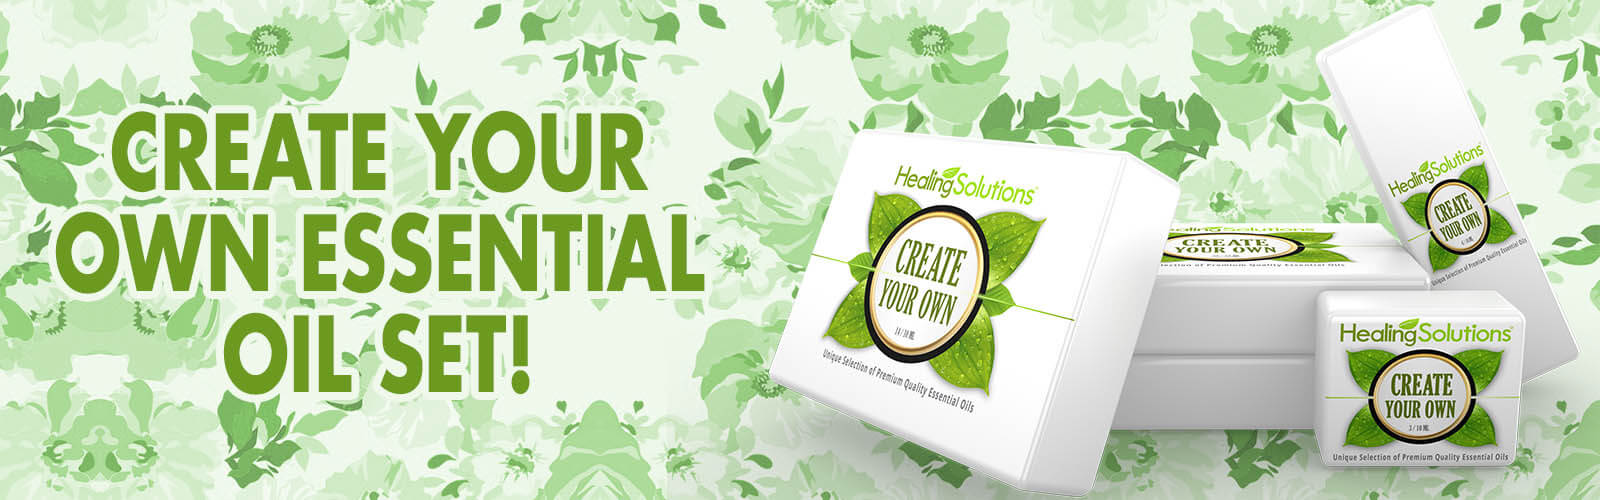 Create your own essntial oil set